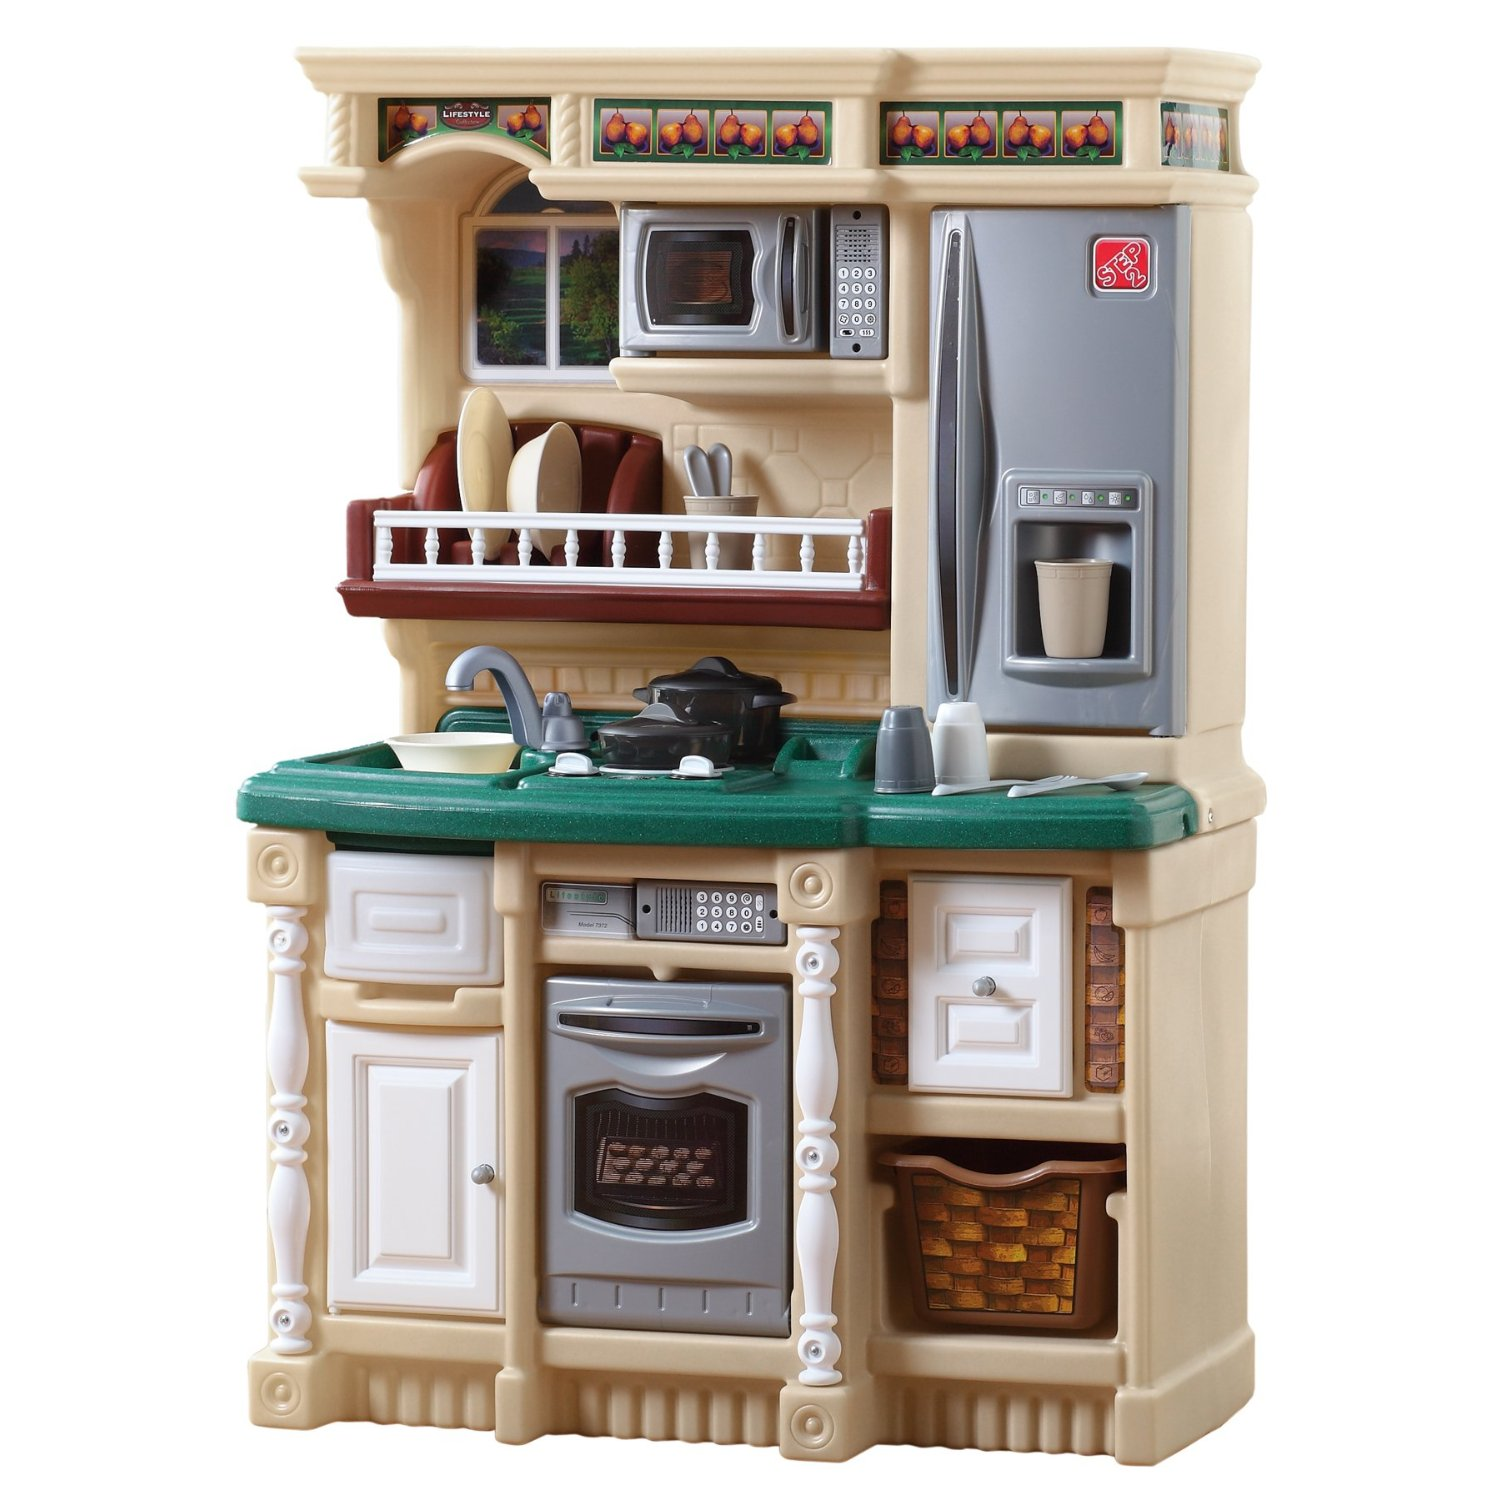 Good wood play kitchen sets homesfeed for Model kitchen set 2016